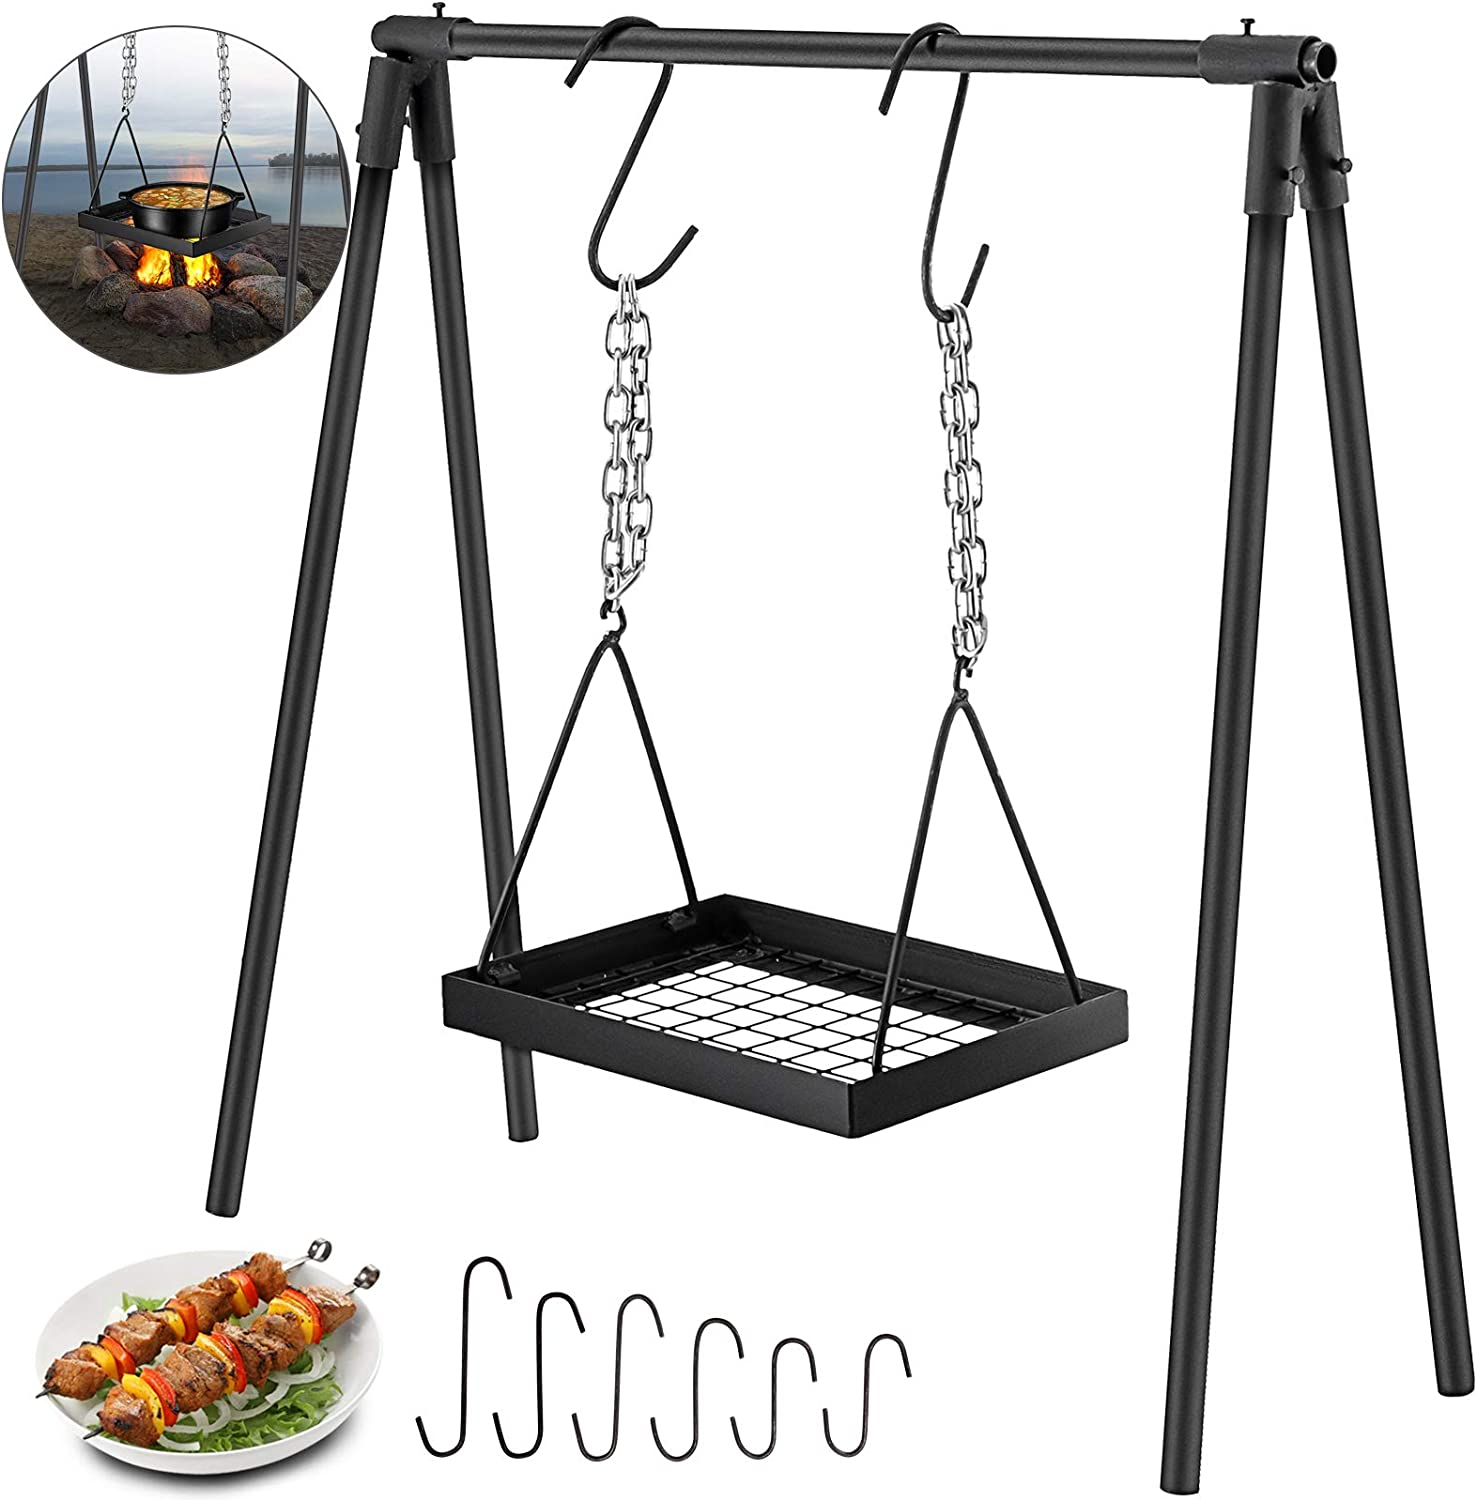 VBENLEM Swing Grill Campfire Cooking Stand Outdoor Picnic Cookware Bonfire Party Equipment,Adjustable Heightwith Hooks, Black